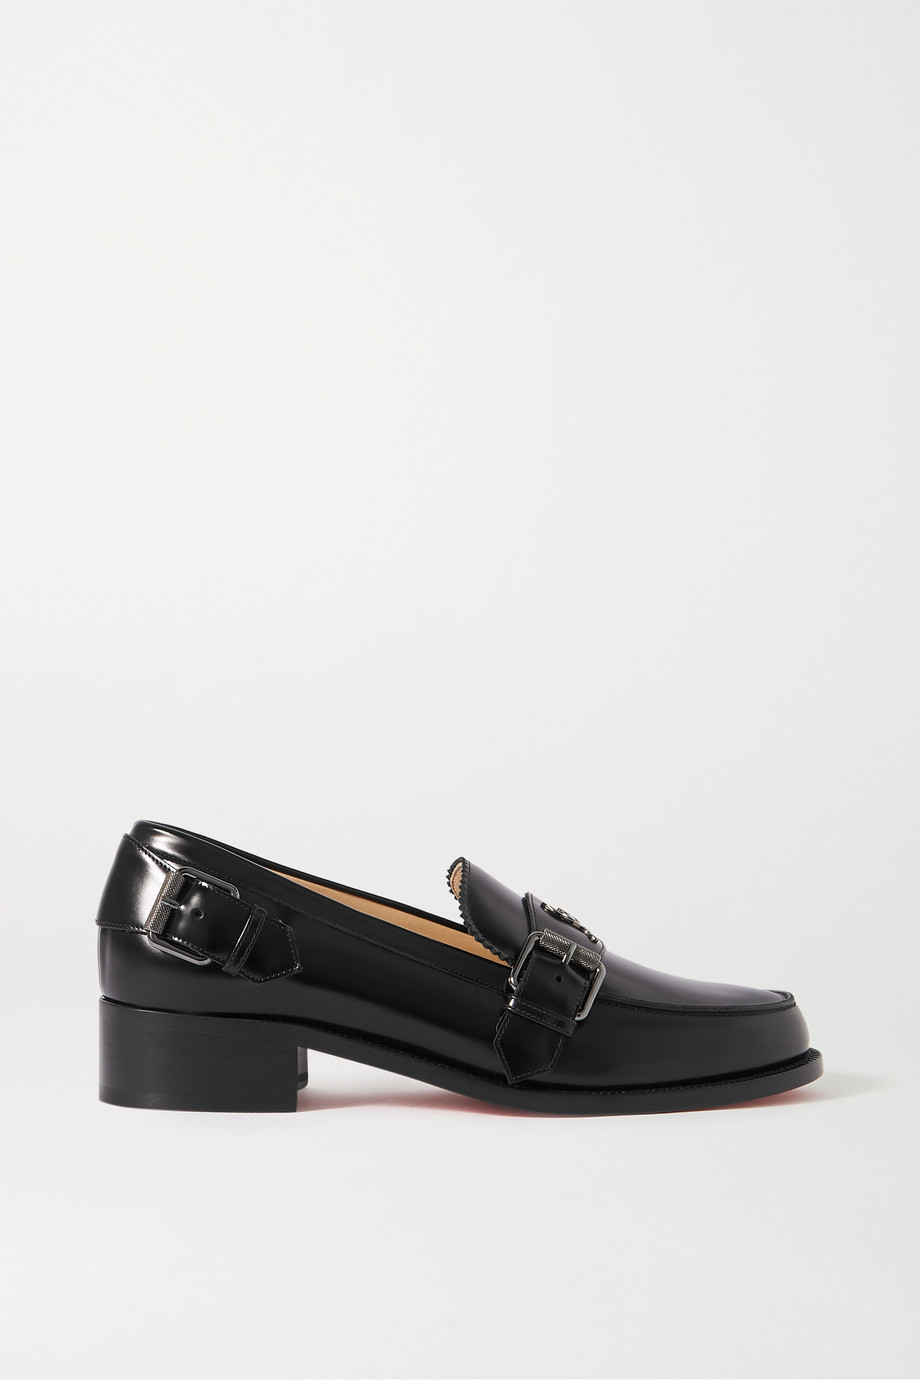 Christian Louboutin Monmoc 40 logo-embellished buckled leather loafers